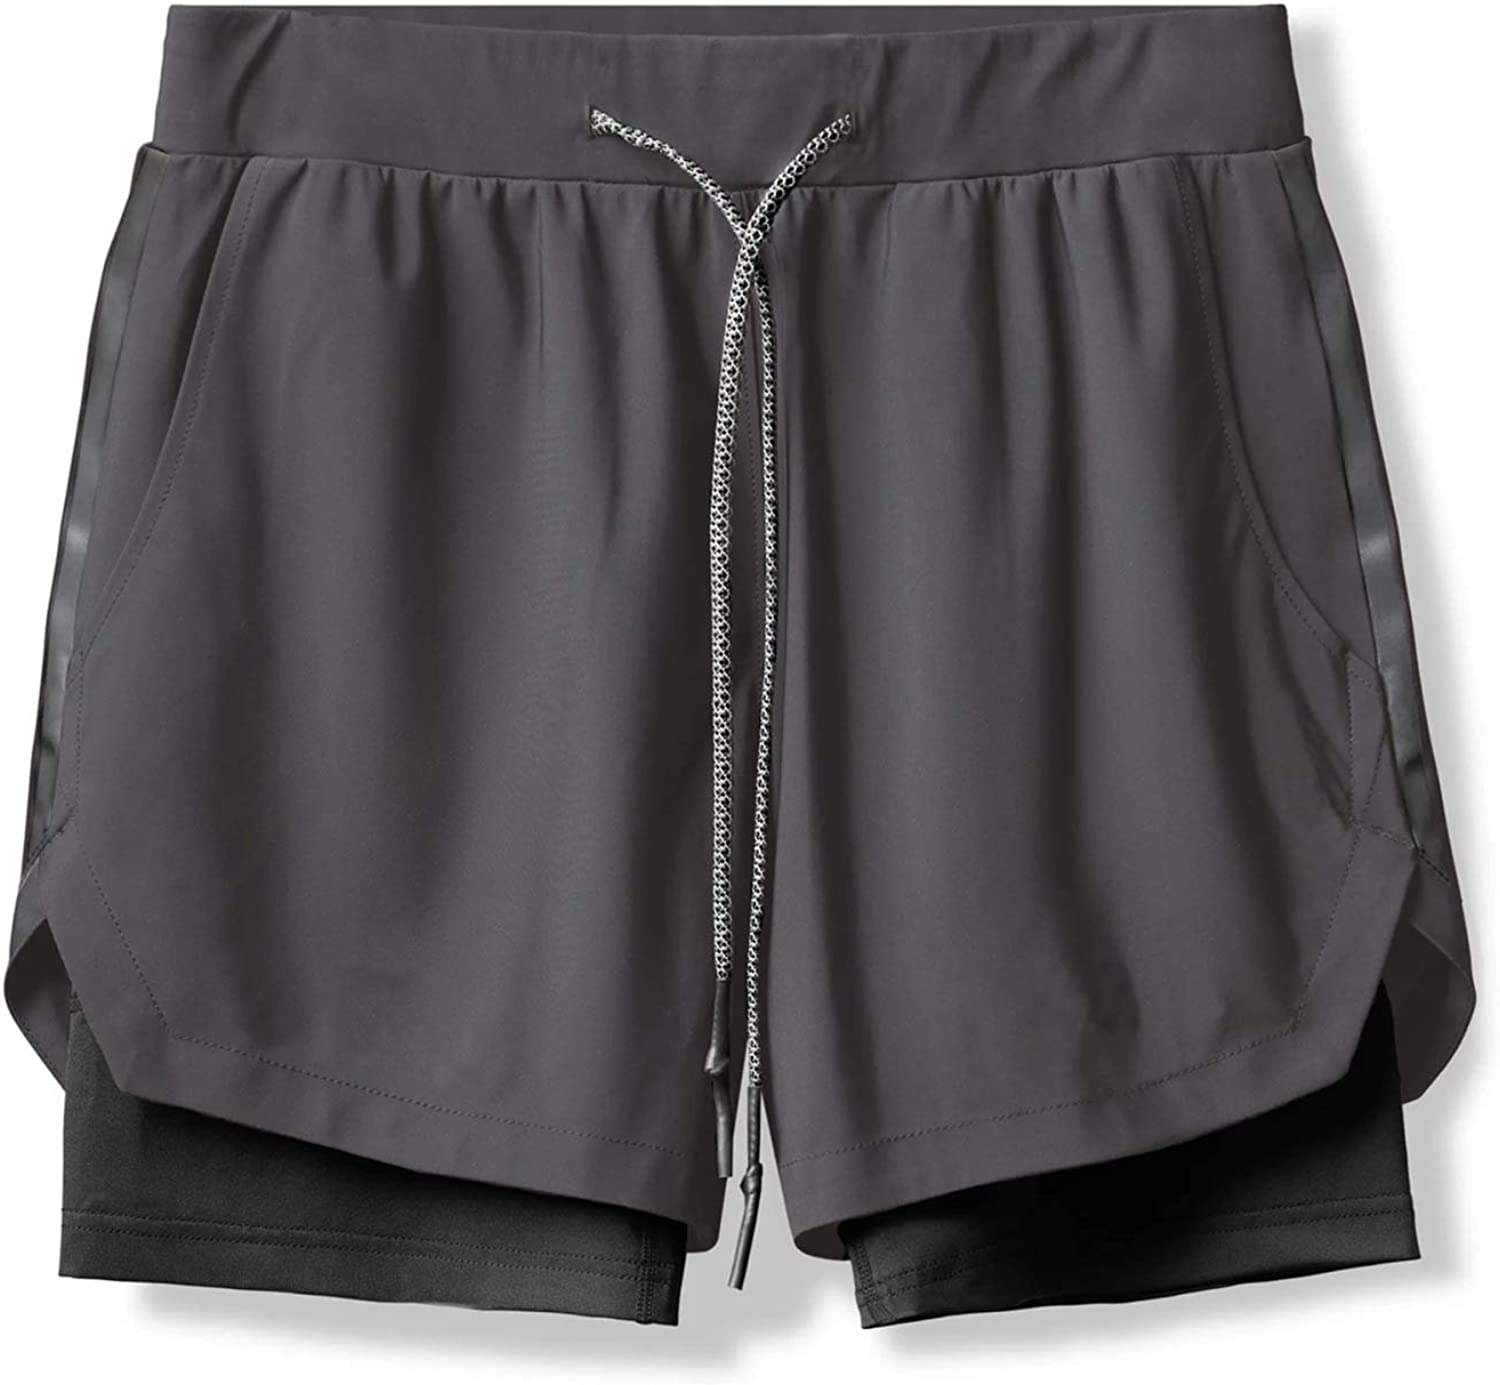 Jubaton Men's 2-in-1 Drawstring Sports Shorts Outdoor Leisure Breathable Gym Training